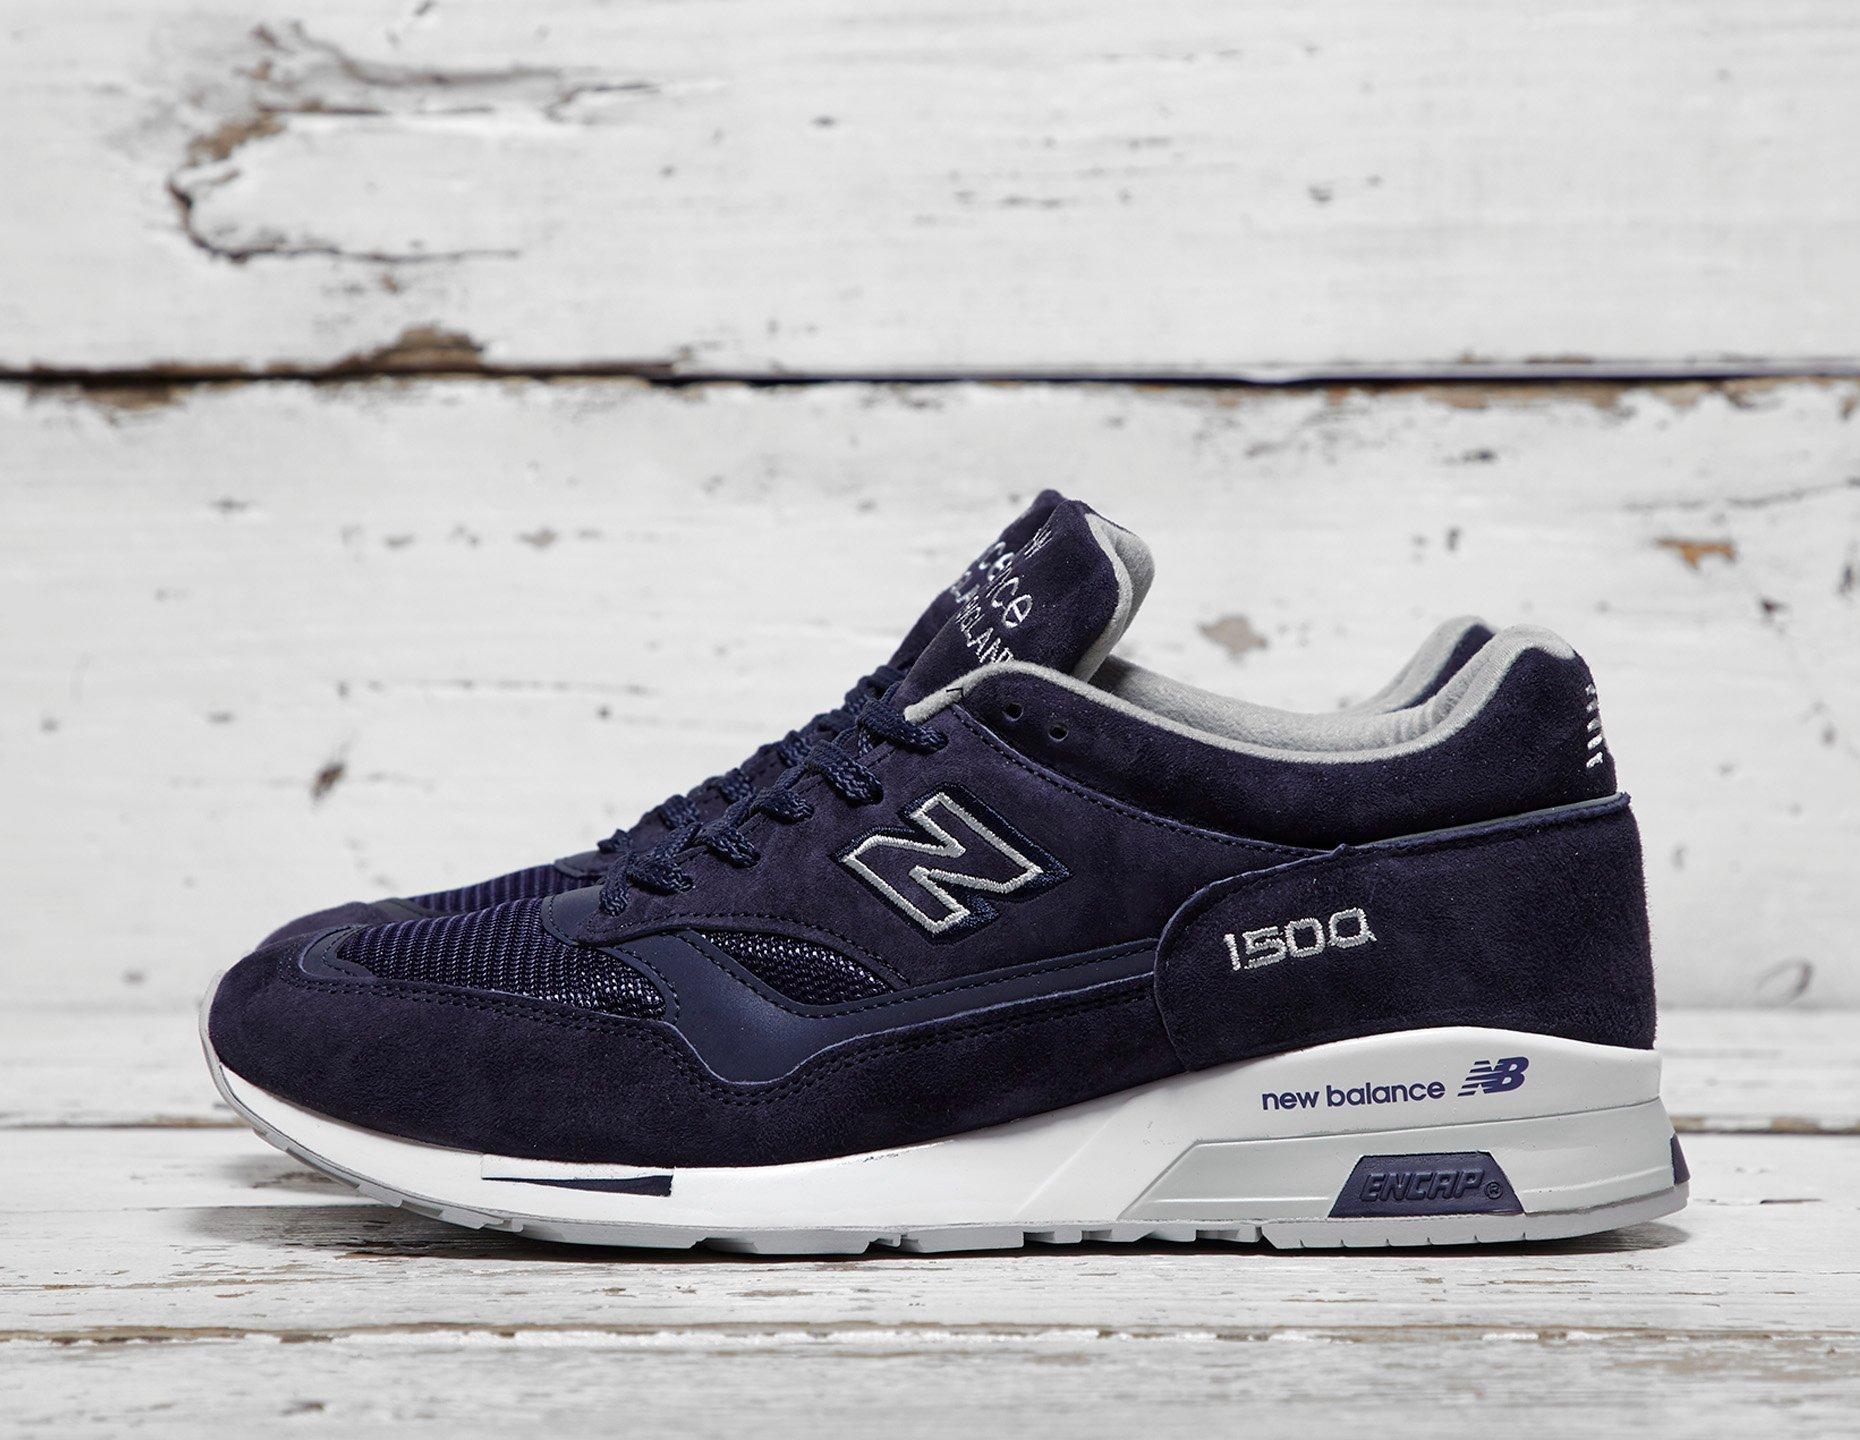 info for cac9a f2581 New Balance Mens New Balance 1500 - Made in UK - Blue, Blue at Soleheaven  Curated Collections